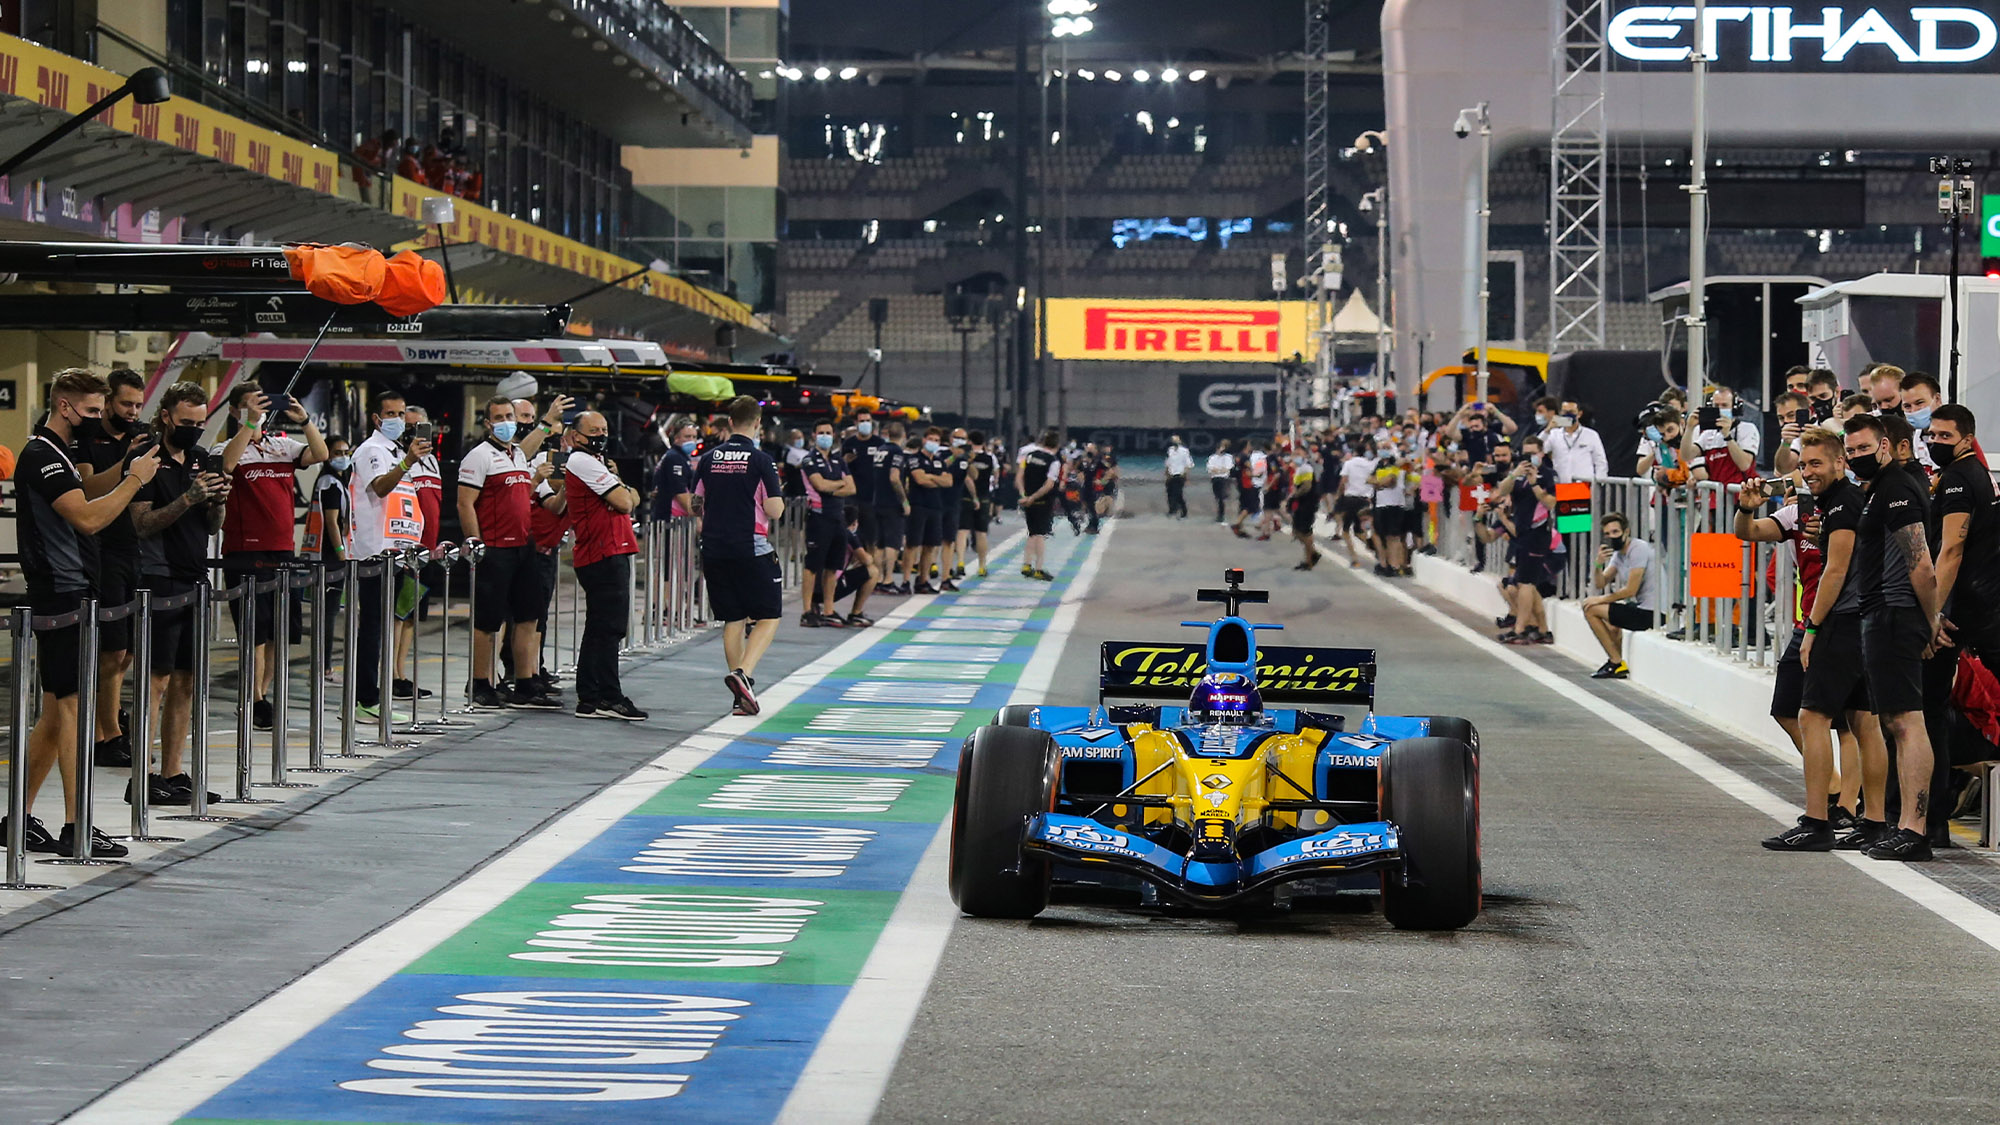 Fernando Alonso drives the Renault R25 down the Abu Dhabi pitlane in 2020